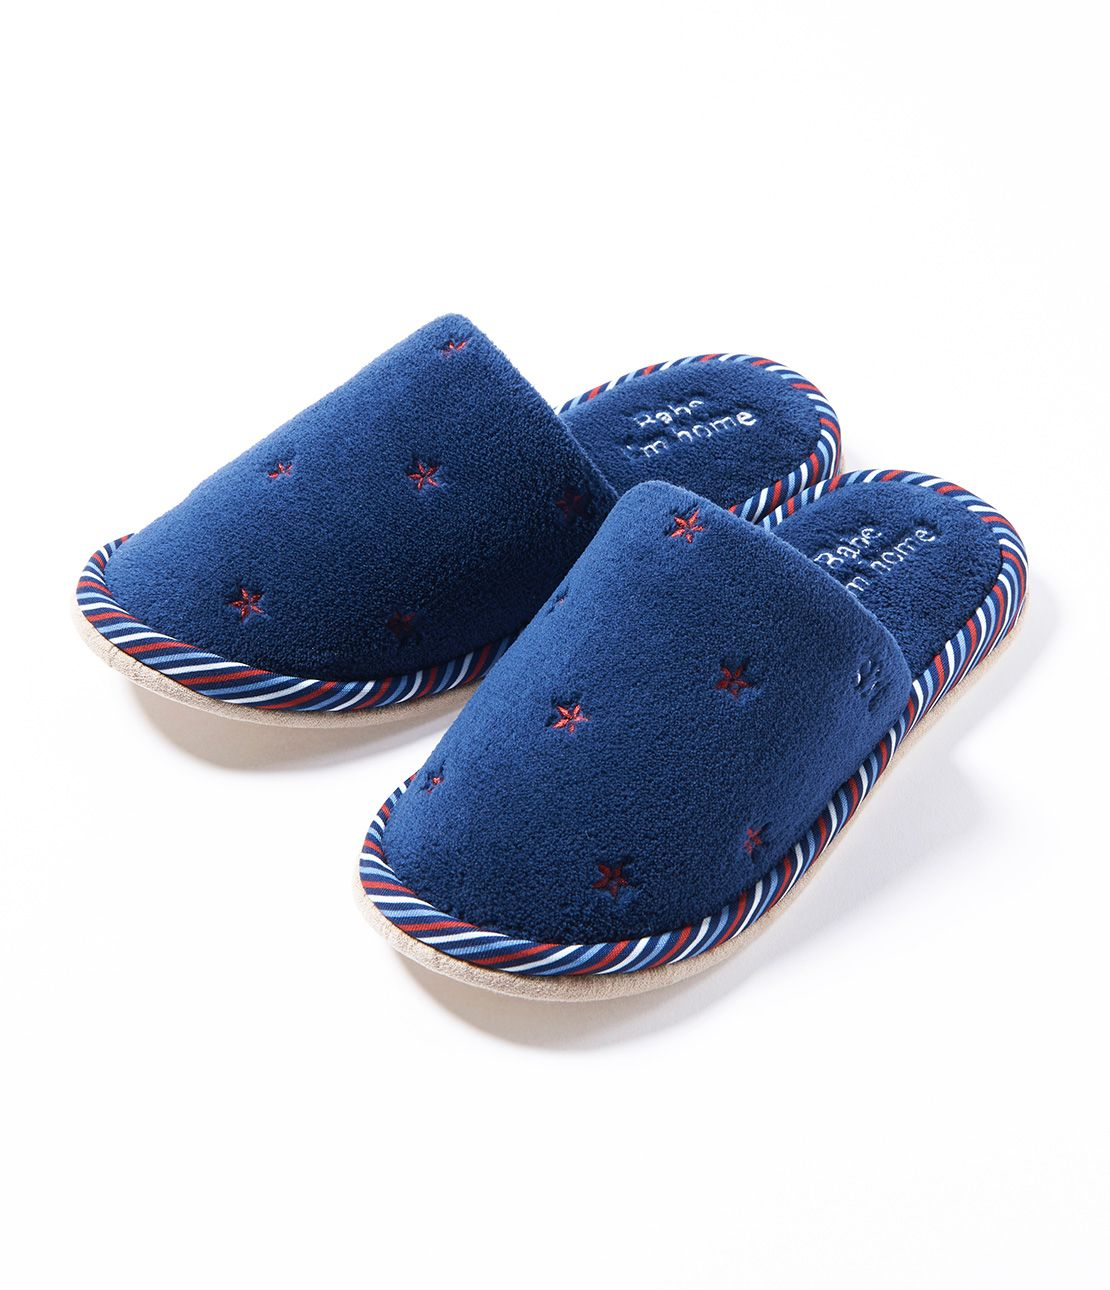 Happy Lovers pair slippers set